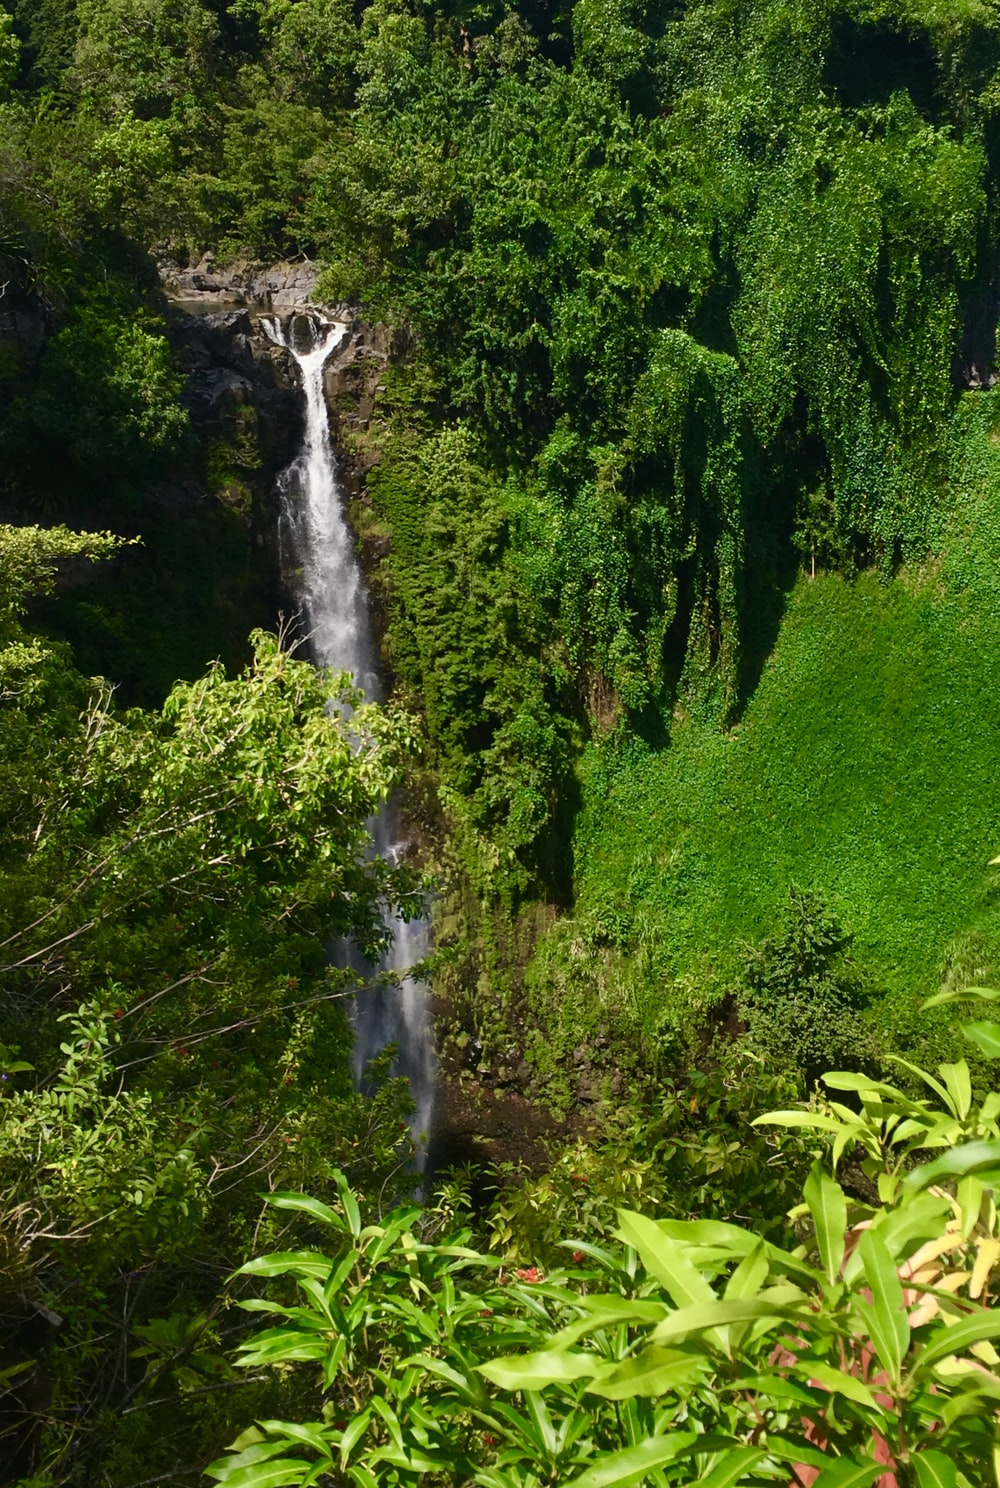 waterfalls surrounded with tall and green trees during daytime